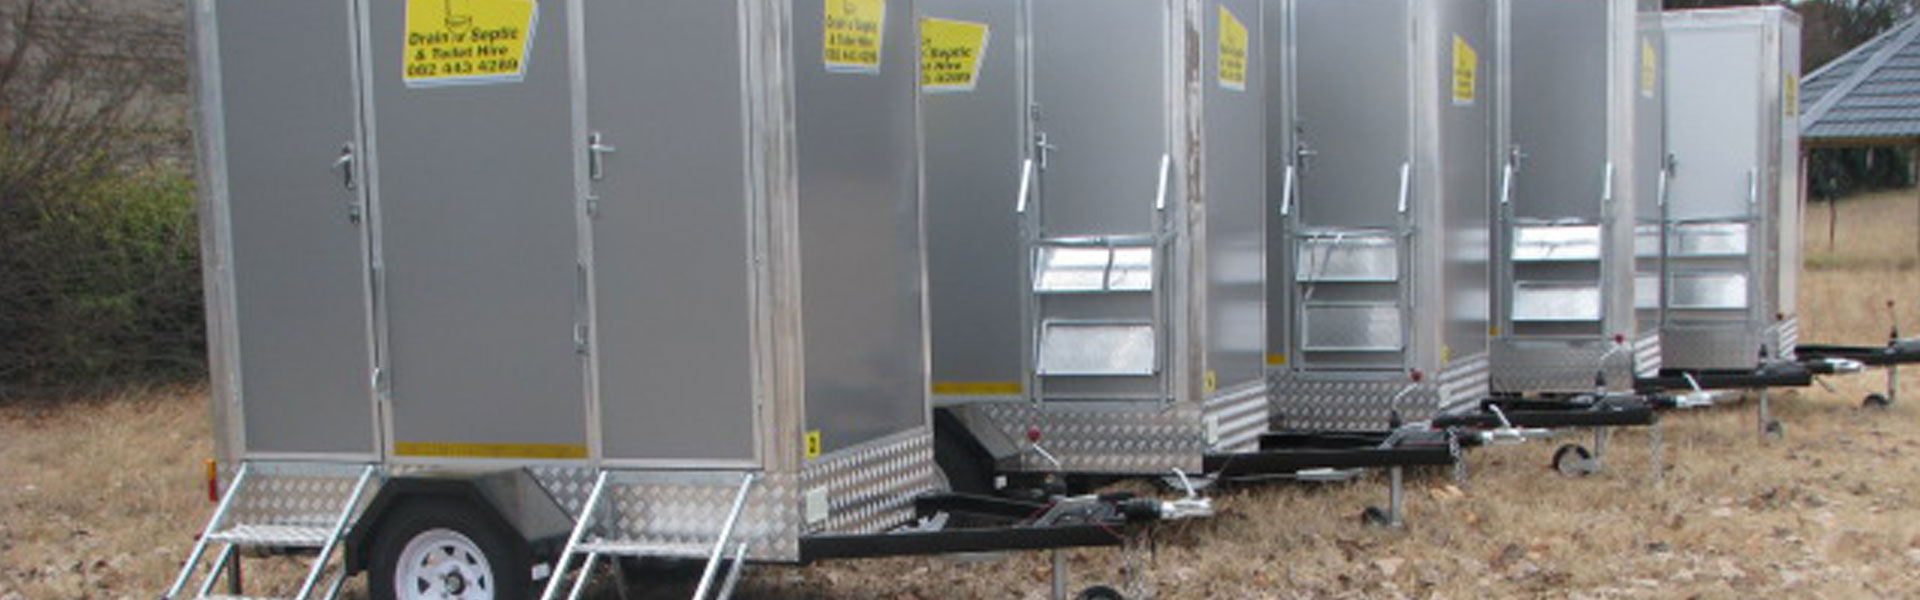 Drain-a-Septic-Mobile-Trailer-Units